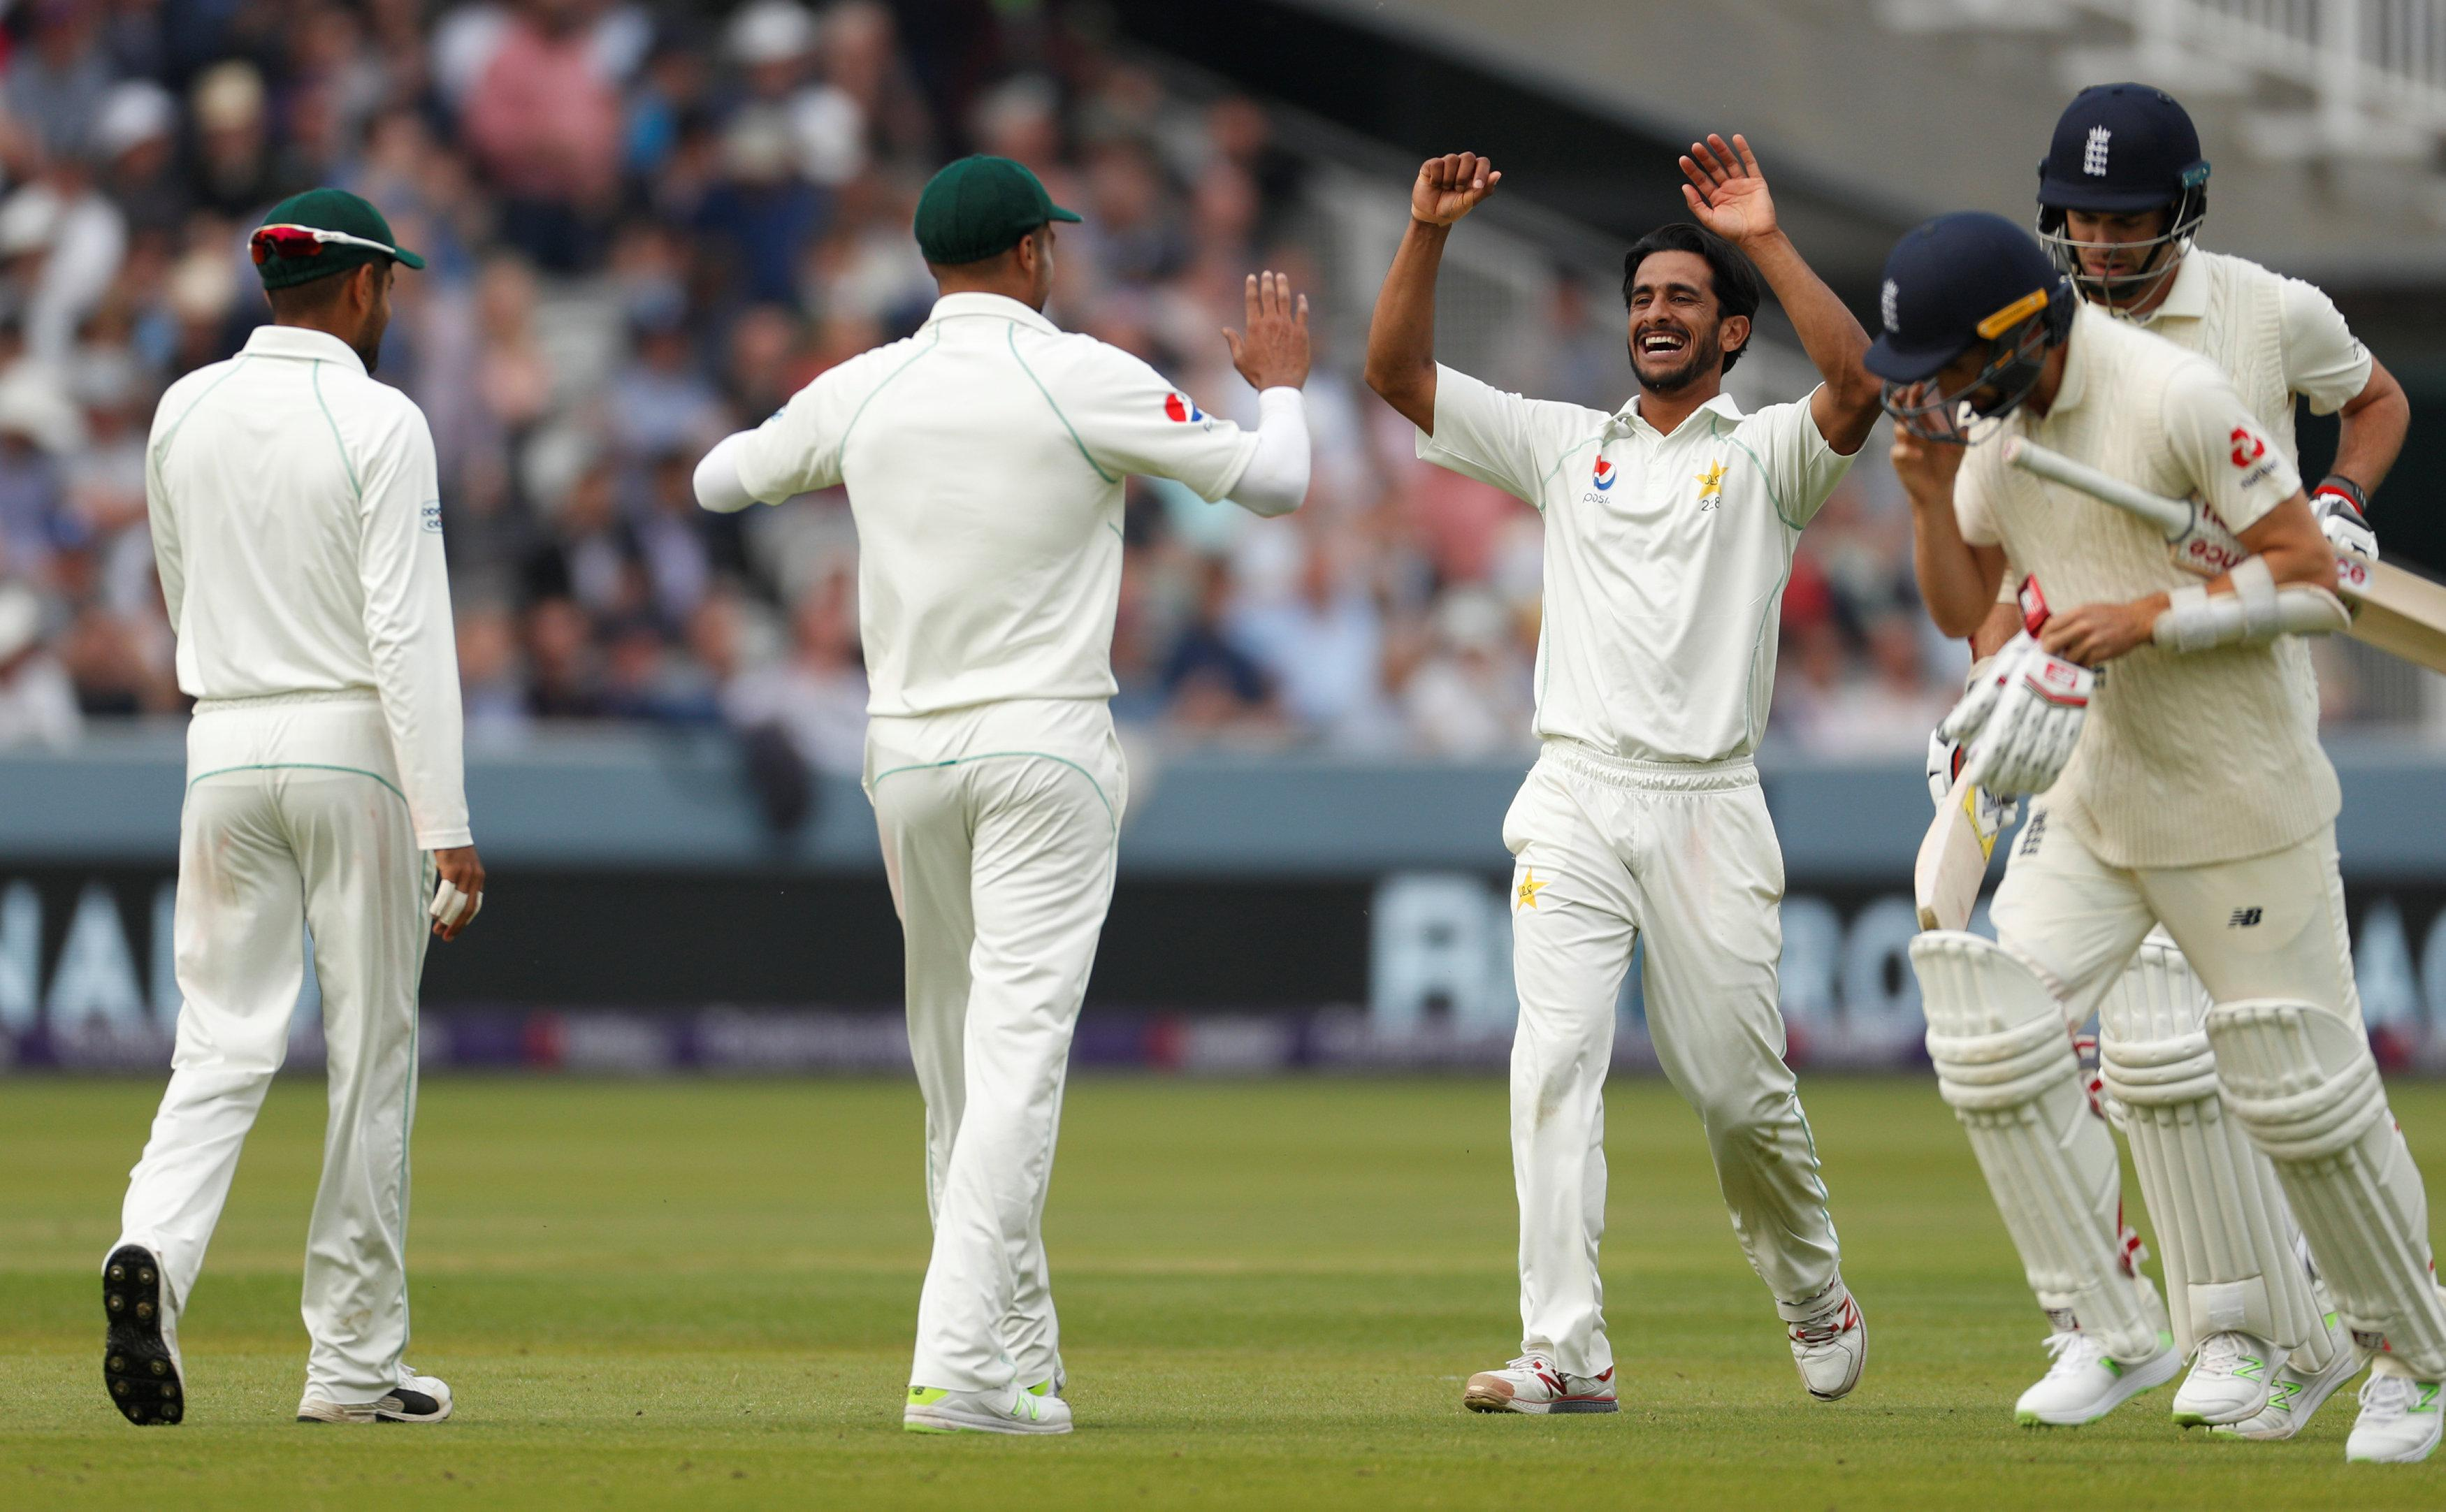 Pakistan bowled England out for 184 on day one at Lord's